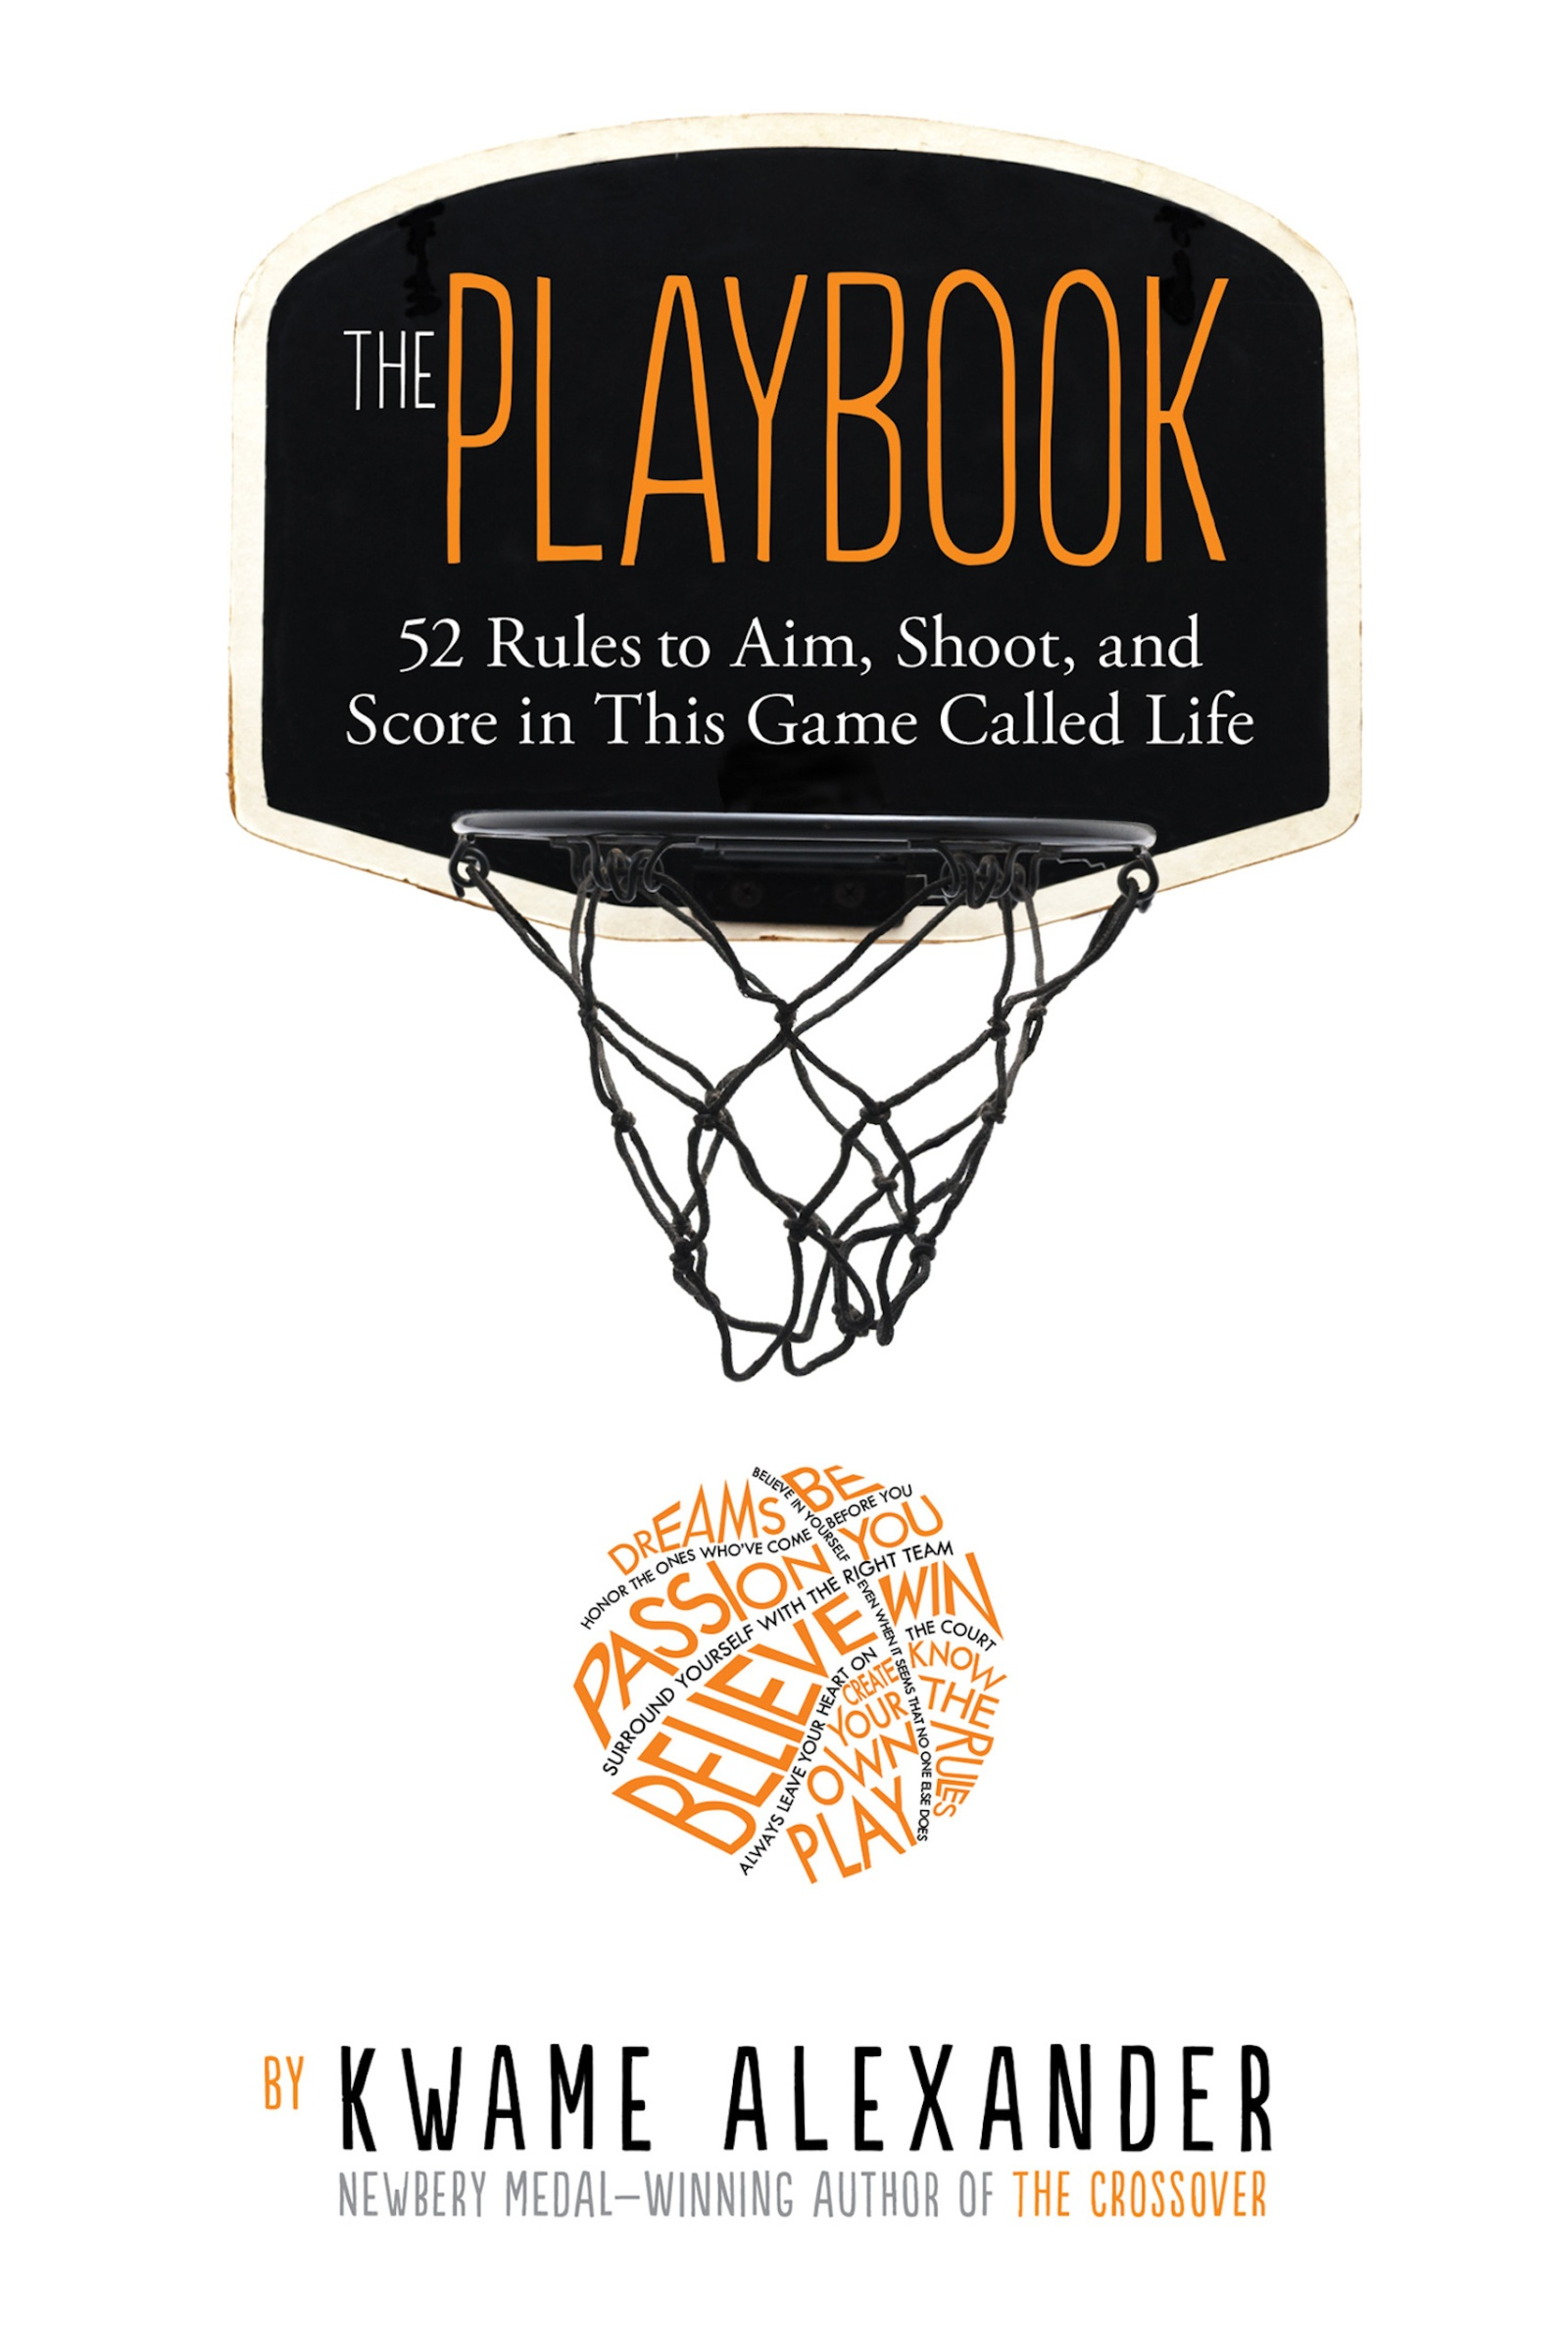 The Playbook [electronic resource] : 52 Rules to Aim, Shoot, and Score in This Game Called Life